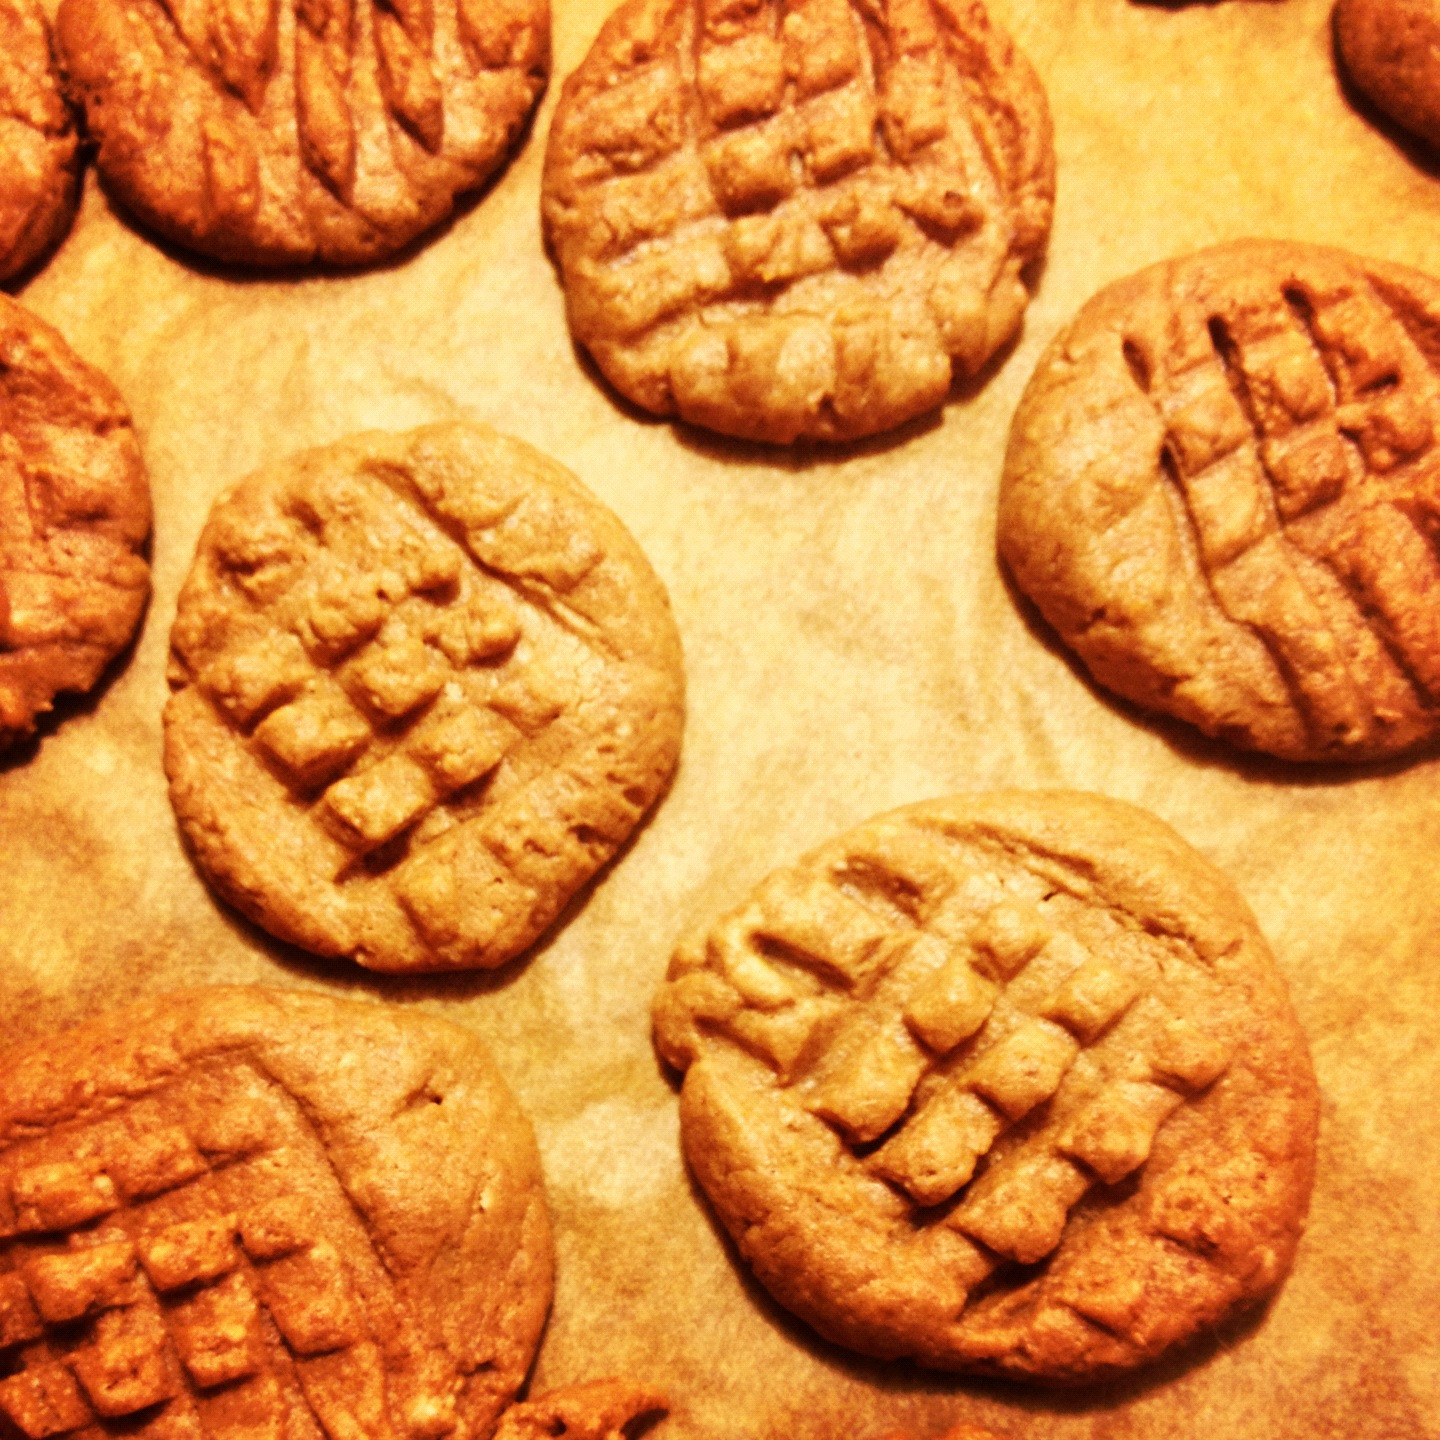 Keto Cookies Peanut Butter  Keto friendly peanut butter cookies